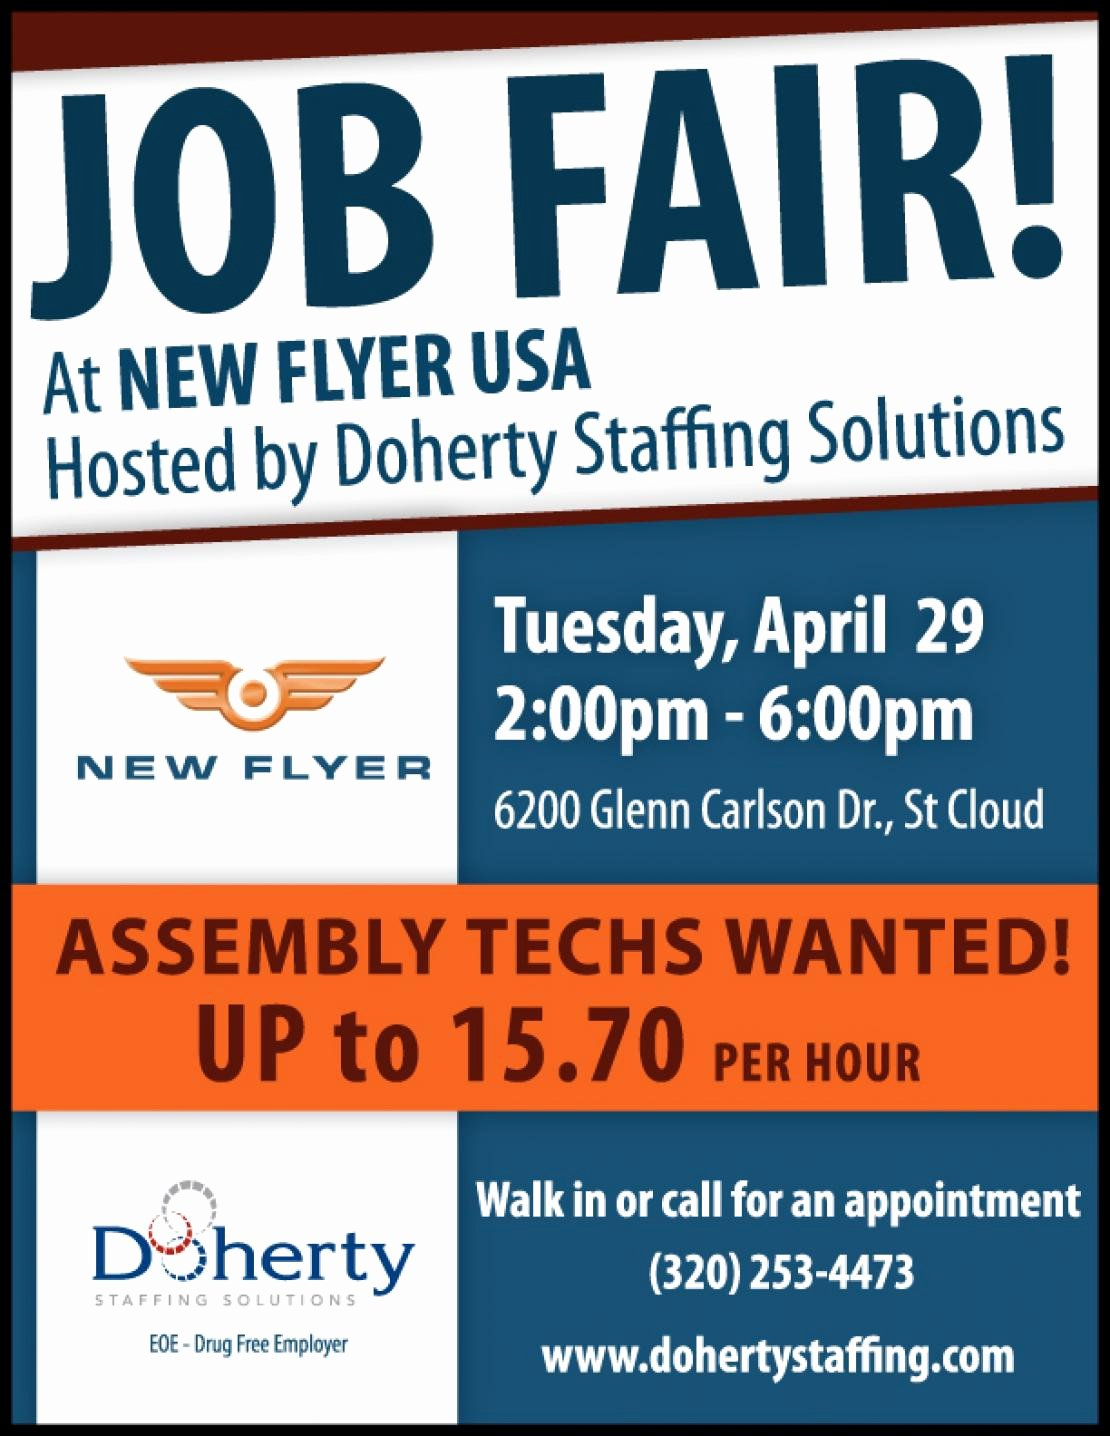 Doherty Job Fair Tuesday April 29 In St Cloud for New